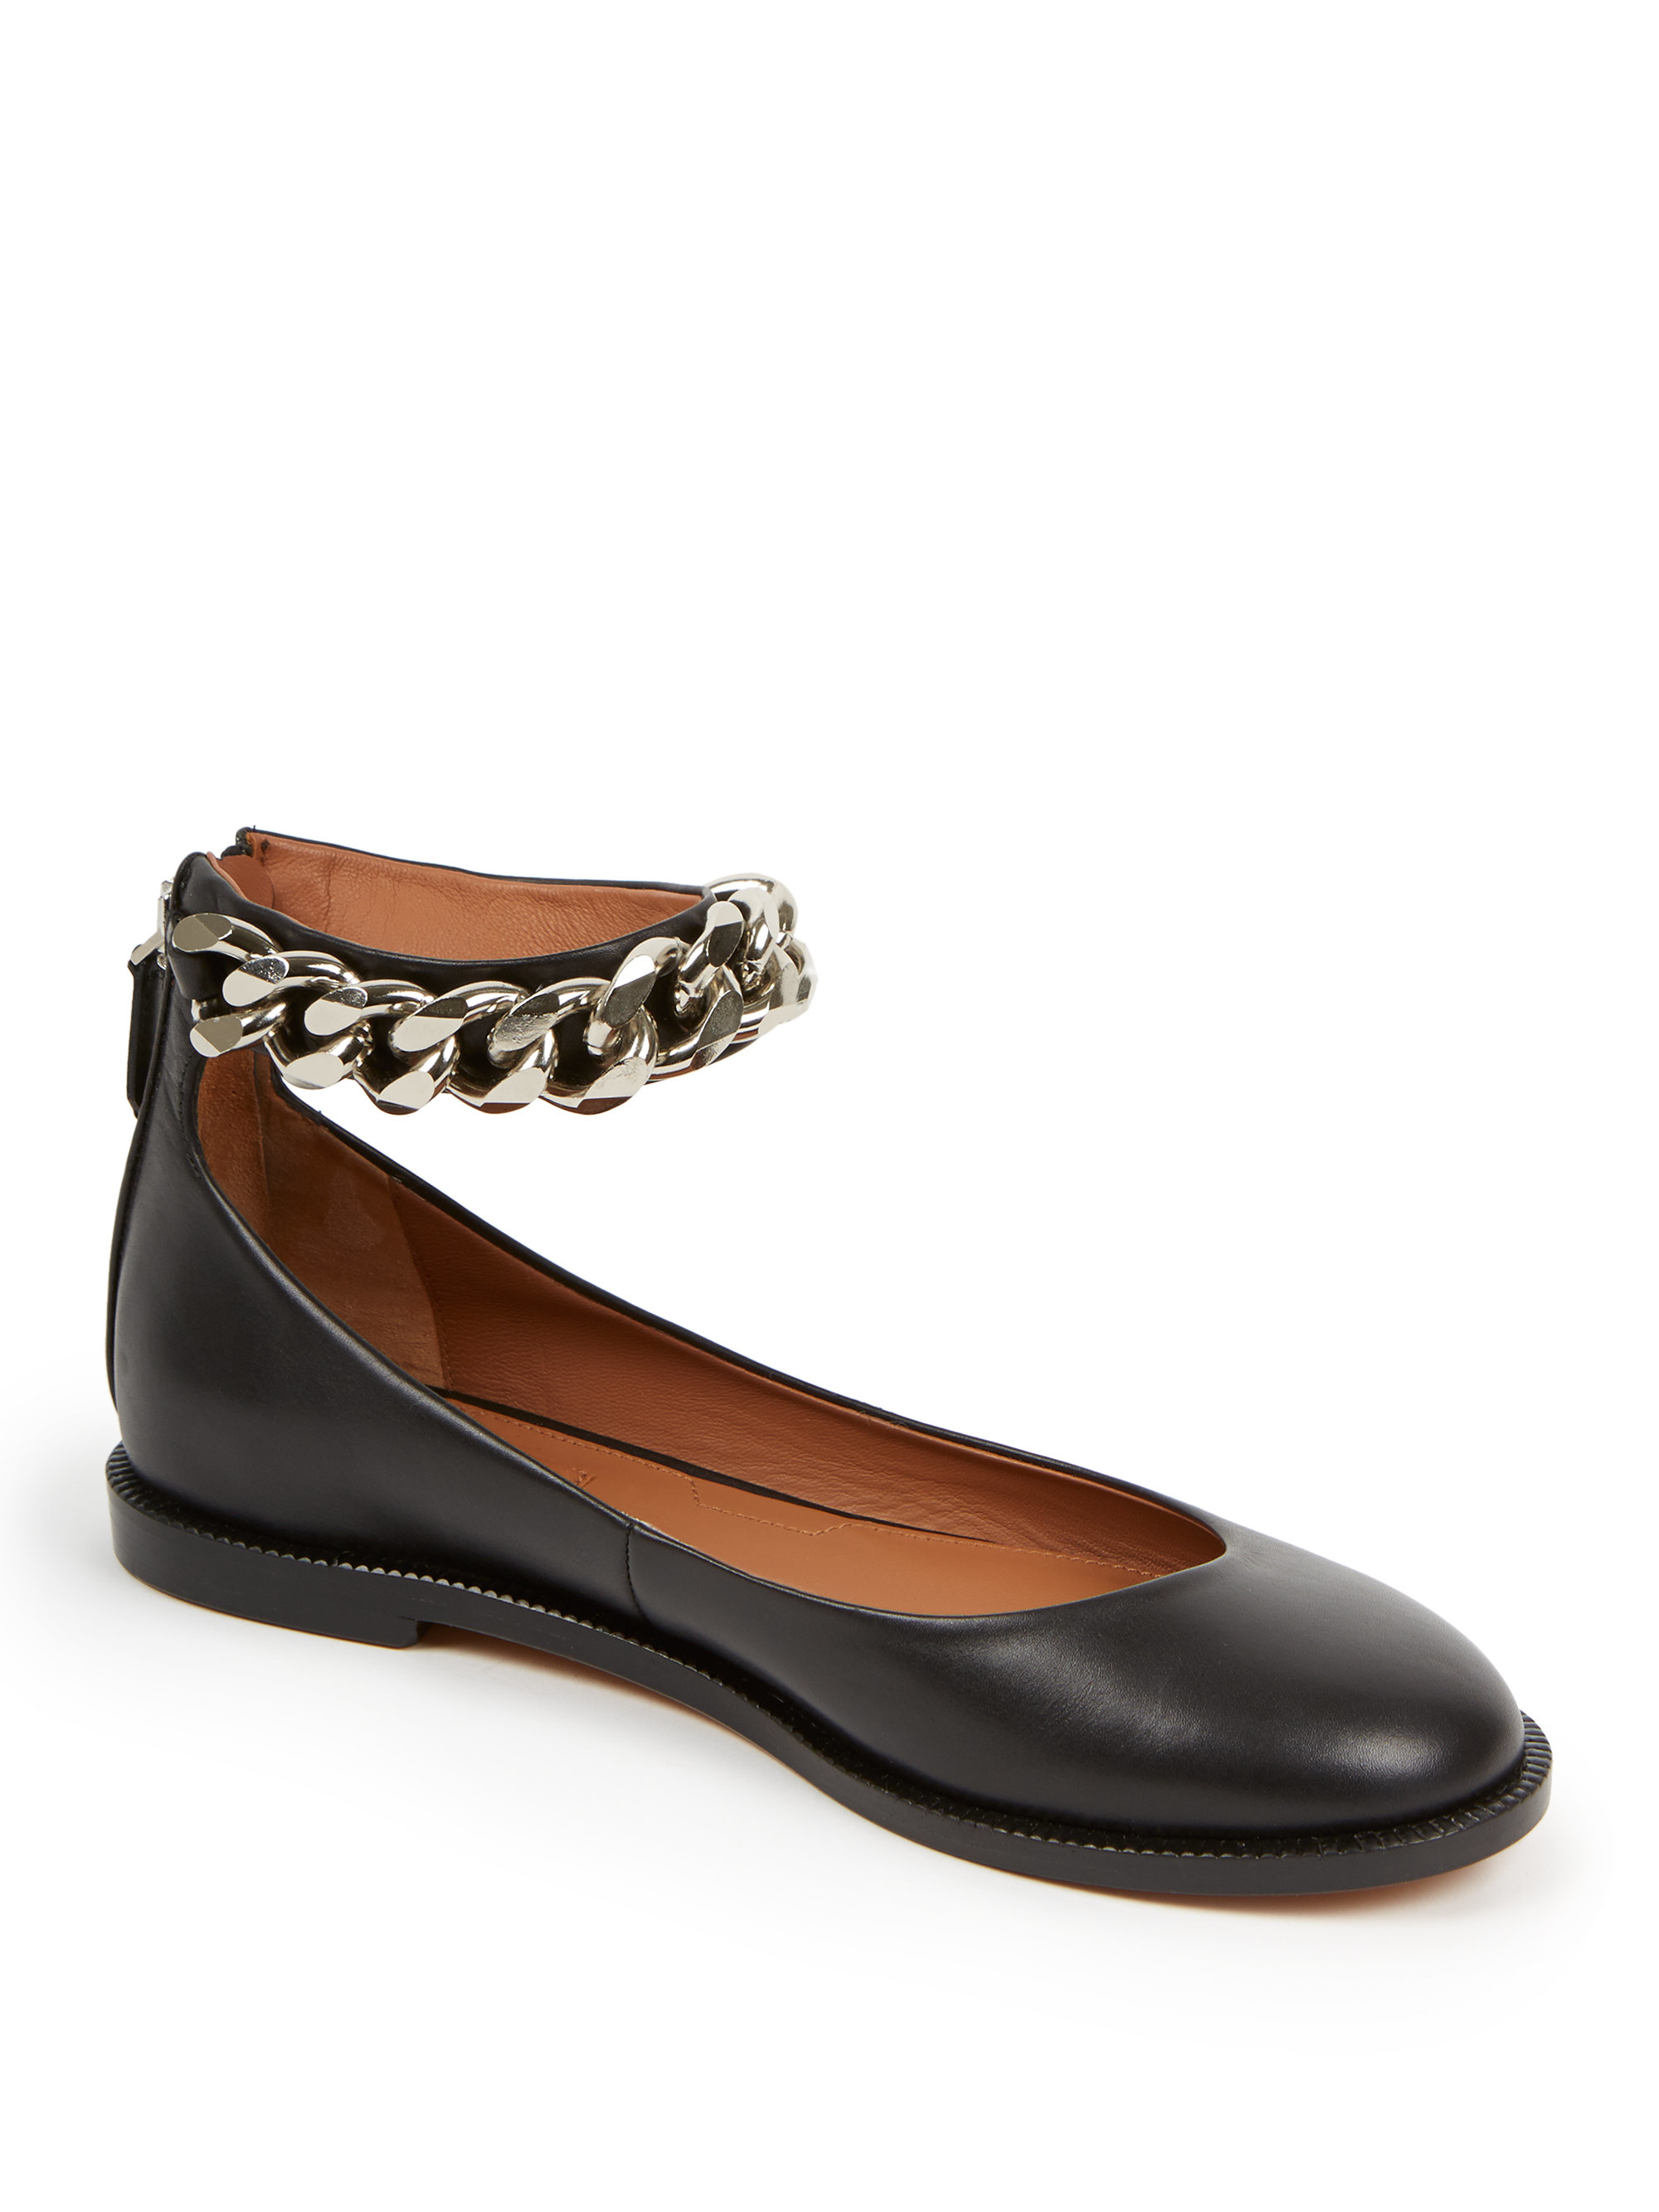 01986c6d518 Lyst - Givenchy Chain-trimmed Leather Ankle-strap Flats in Black